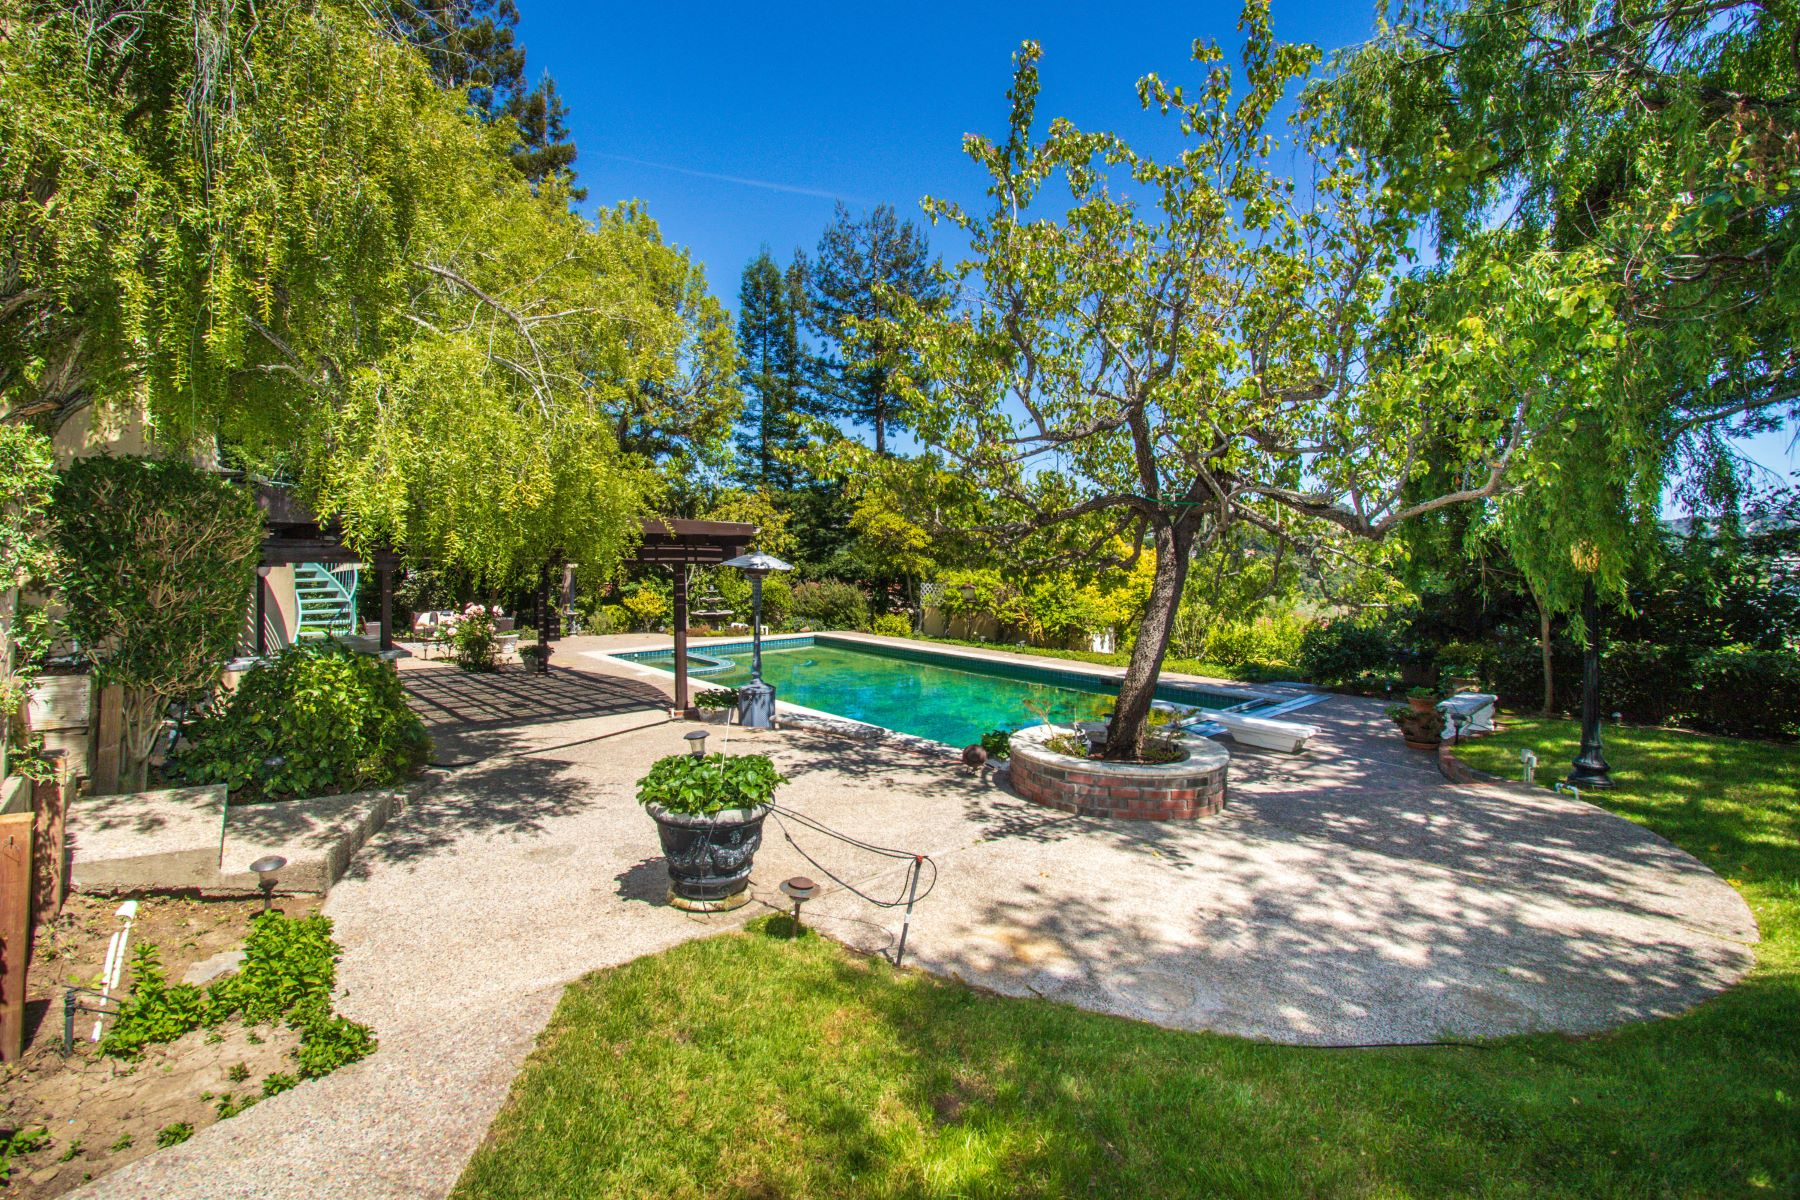 Single Family Homes for Active at Captivating Hillsborough Home in Tranquil, Private Setting 1255 Lakeview Drive Hillsborough, California 94010 United States